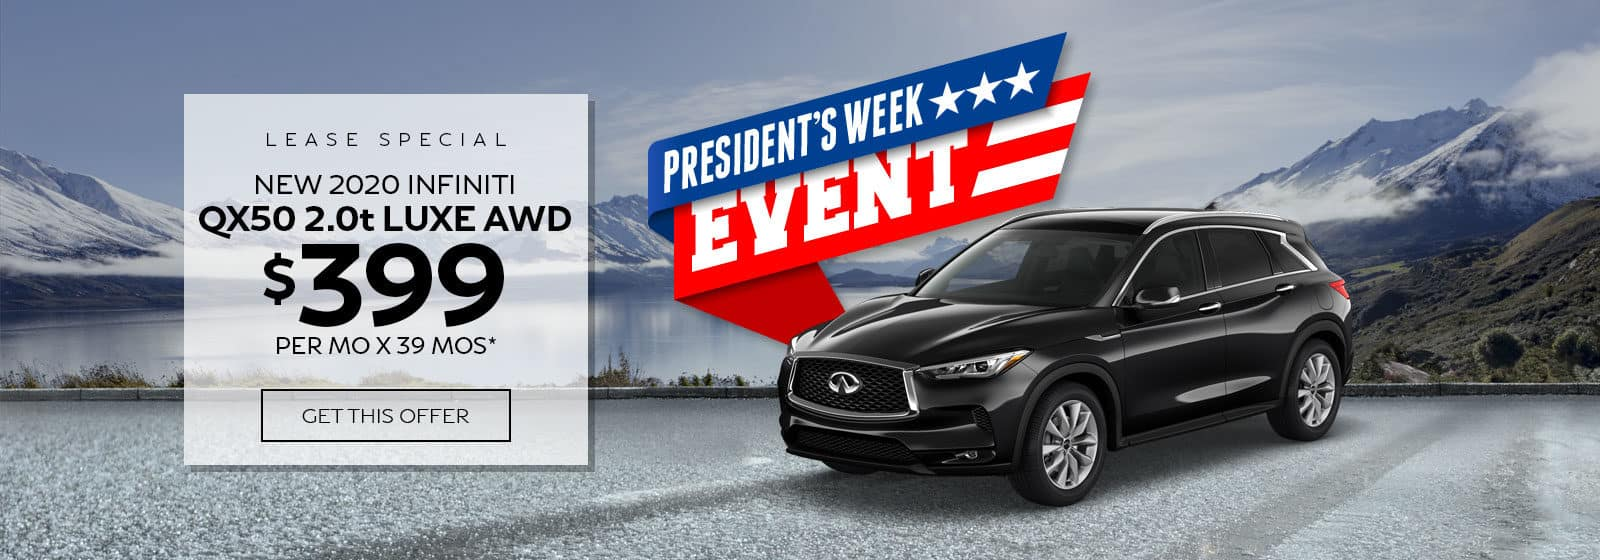 INFINITI QX50 lease special